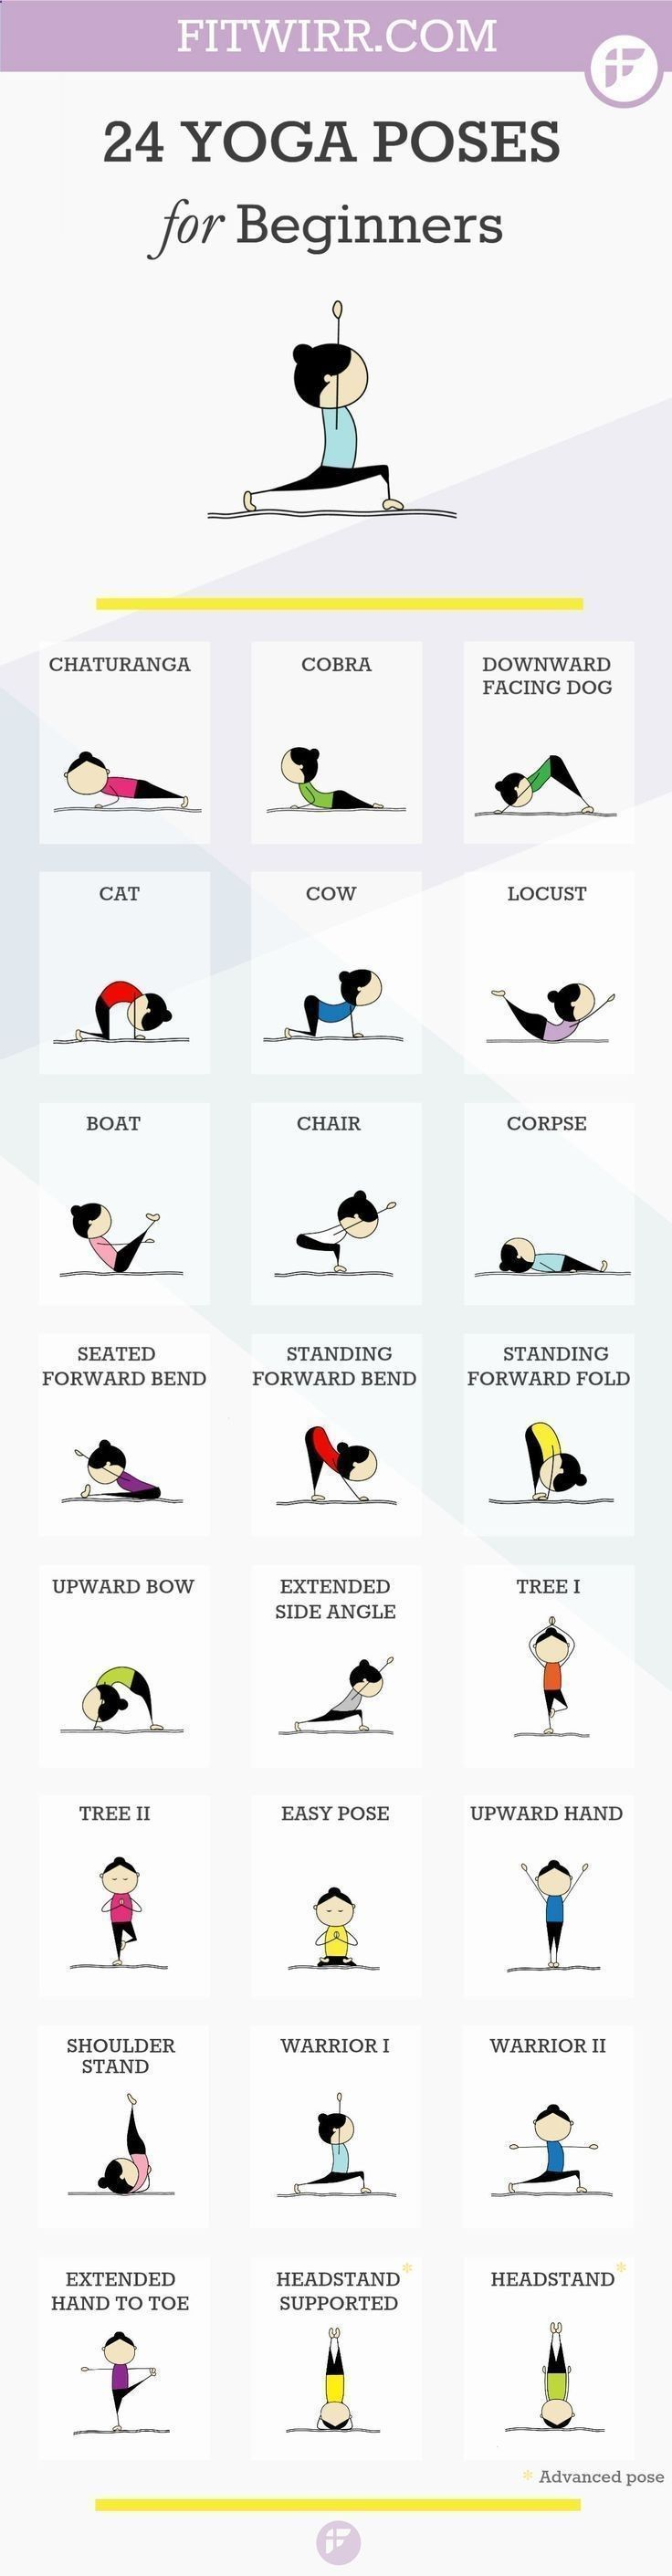 """Program Weight Loss - 24 Yoga poses for beginners. Namaste :-). #yoga #meditation #health amzn.to/2stx5H7 For starters, the E Factor Diet is an online weight-loss program. The ingredients include """"simple real foods"""" found at local grocery stores. #yogameditation"""